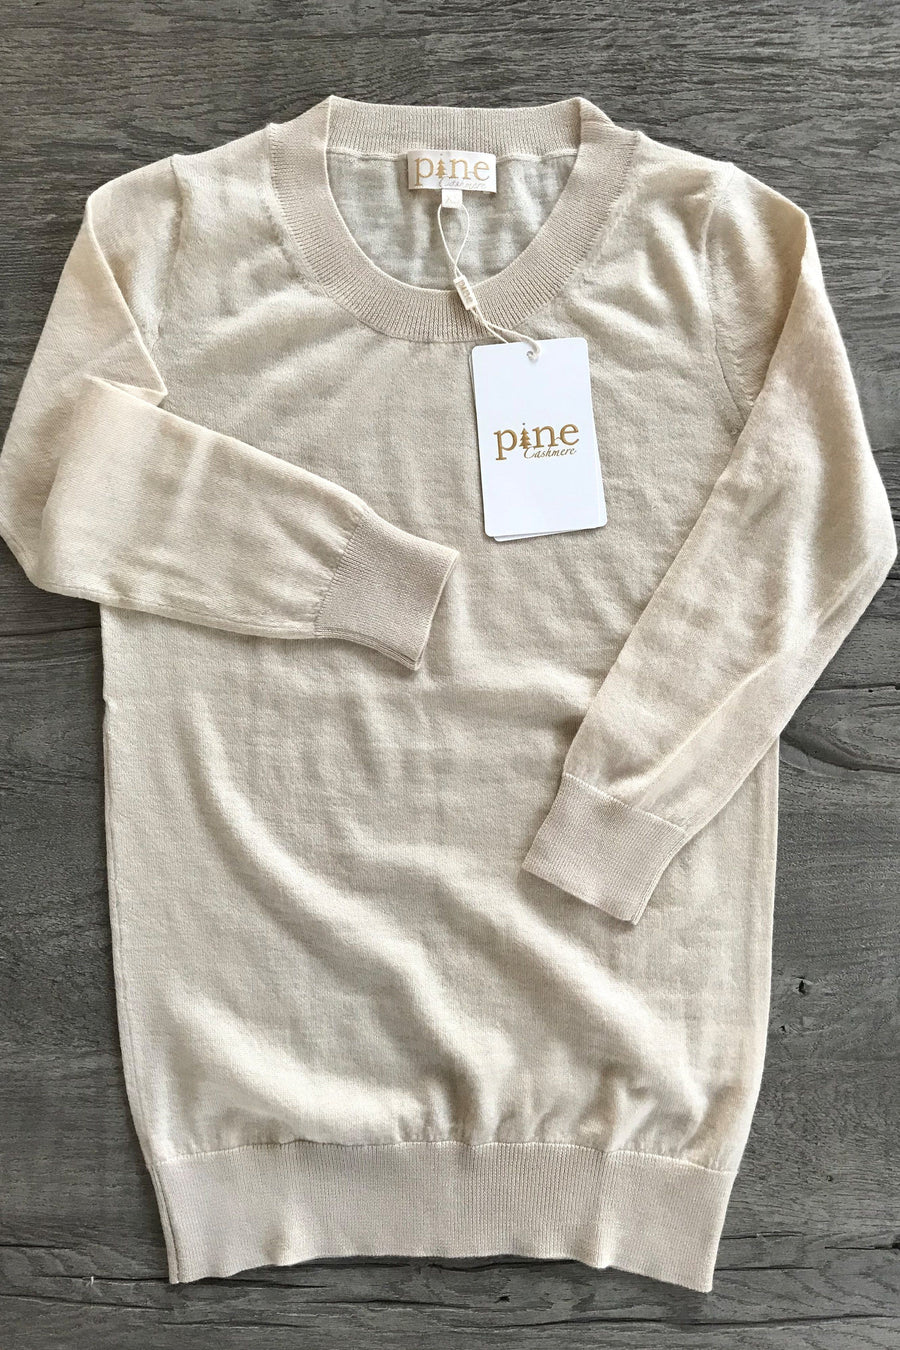 pine cashmere women's crewneck lightweight 100% pure organic cashmere 3/4 sleeve top in tan